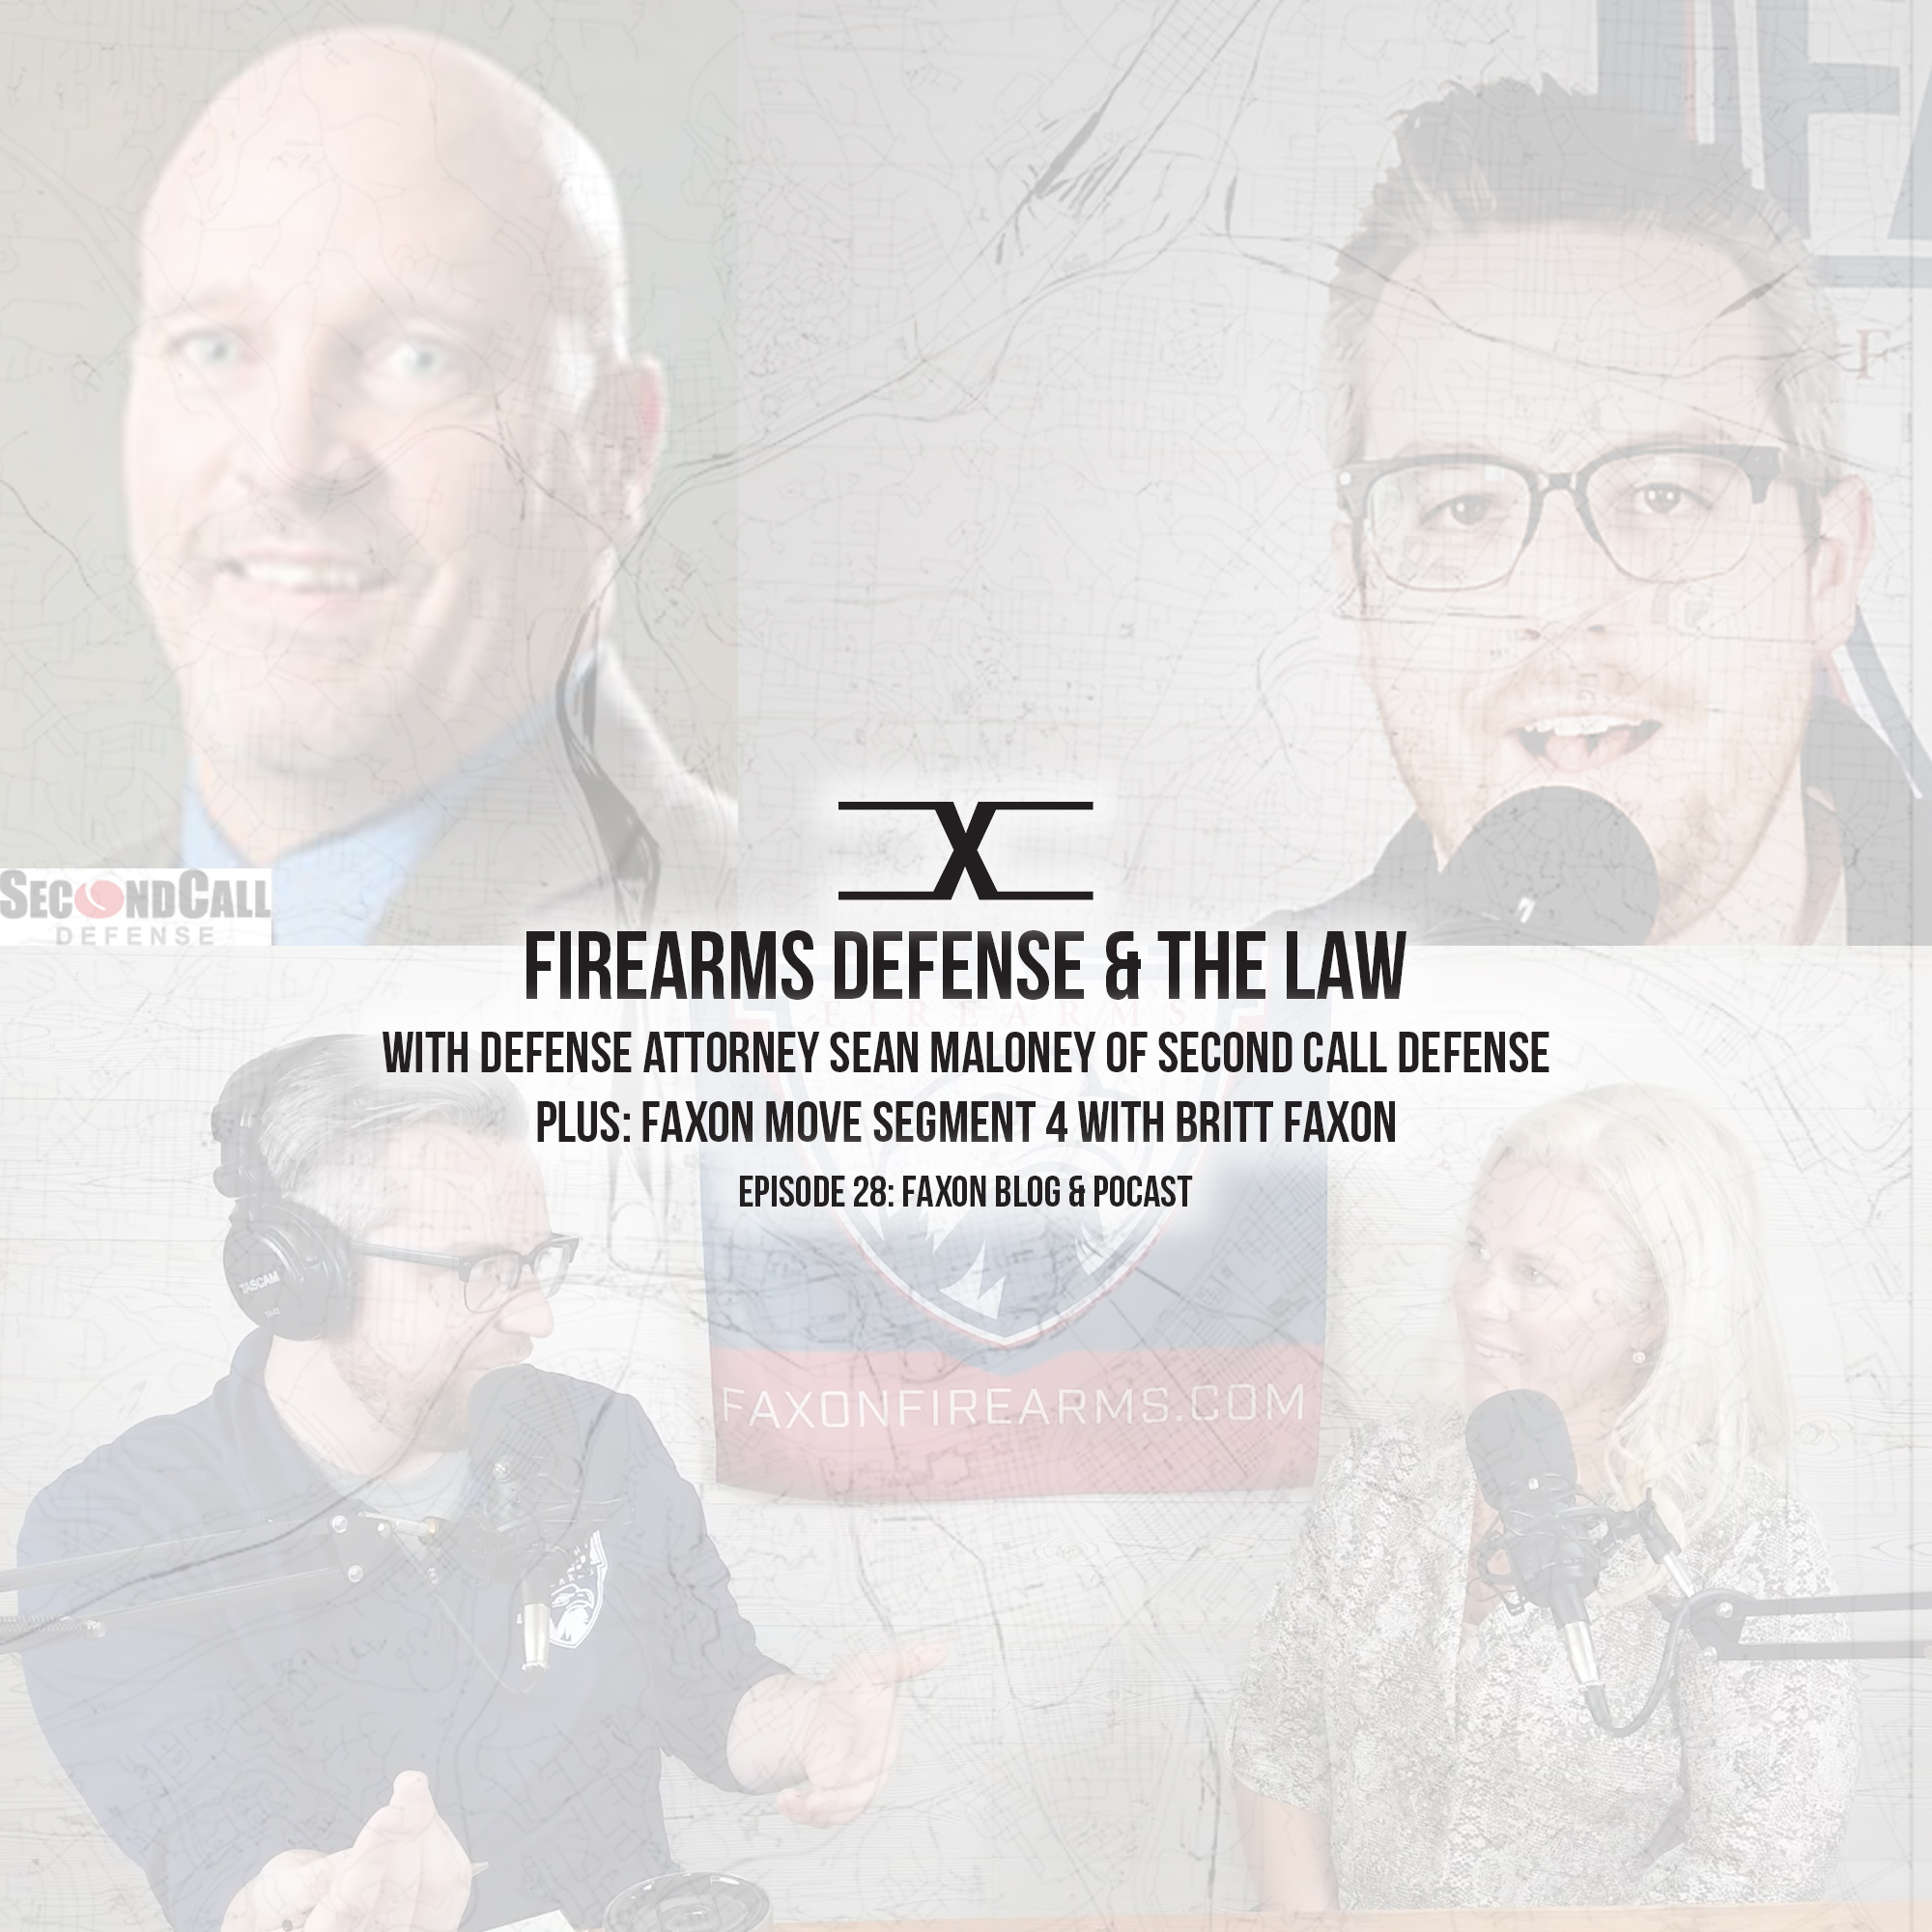 Firearms Defense & The Law | Episode 28: Faxon Blog & Podcast